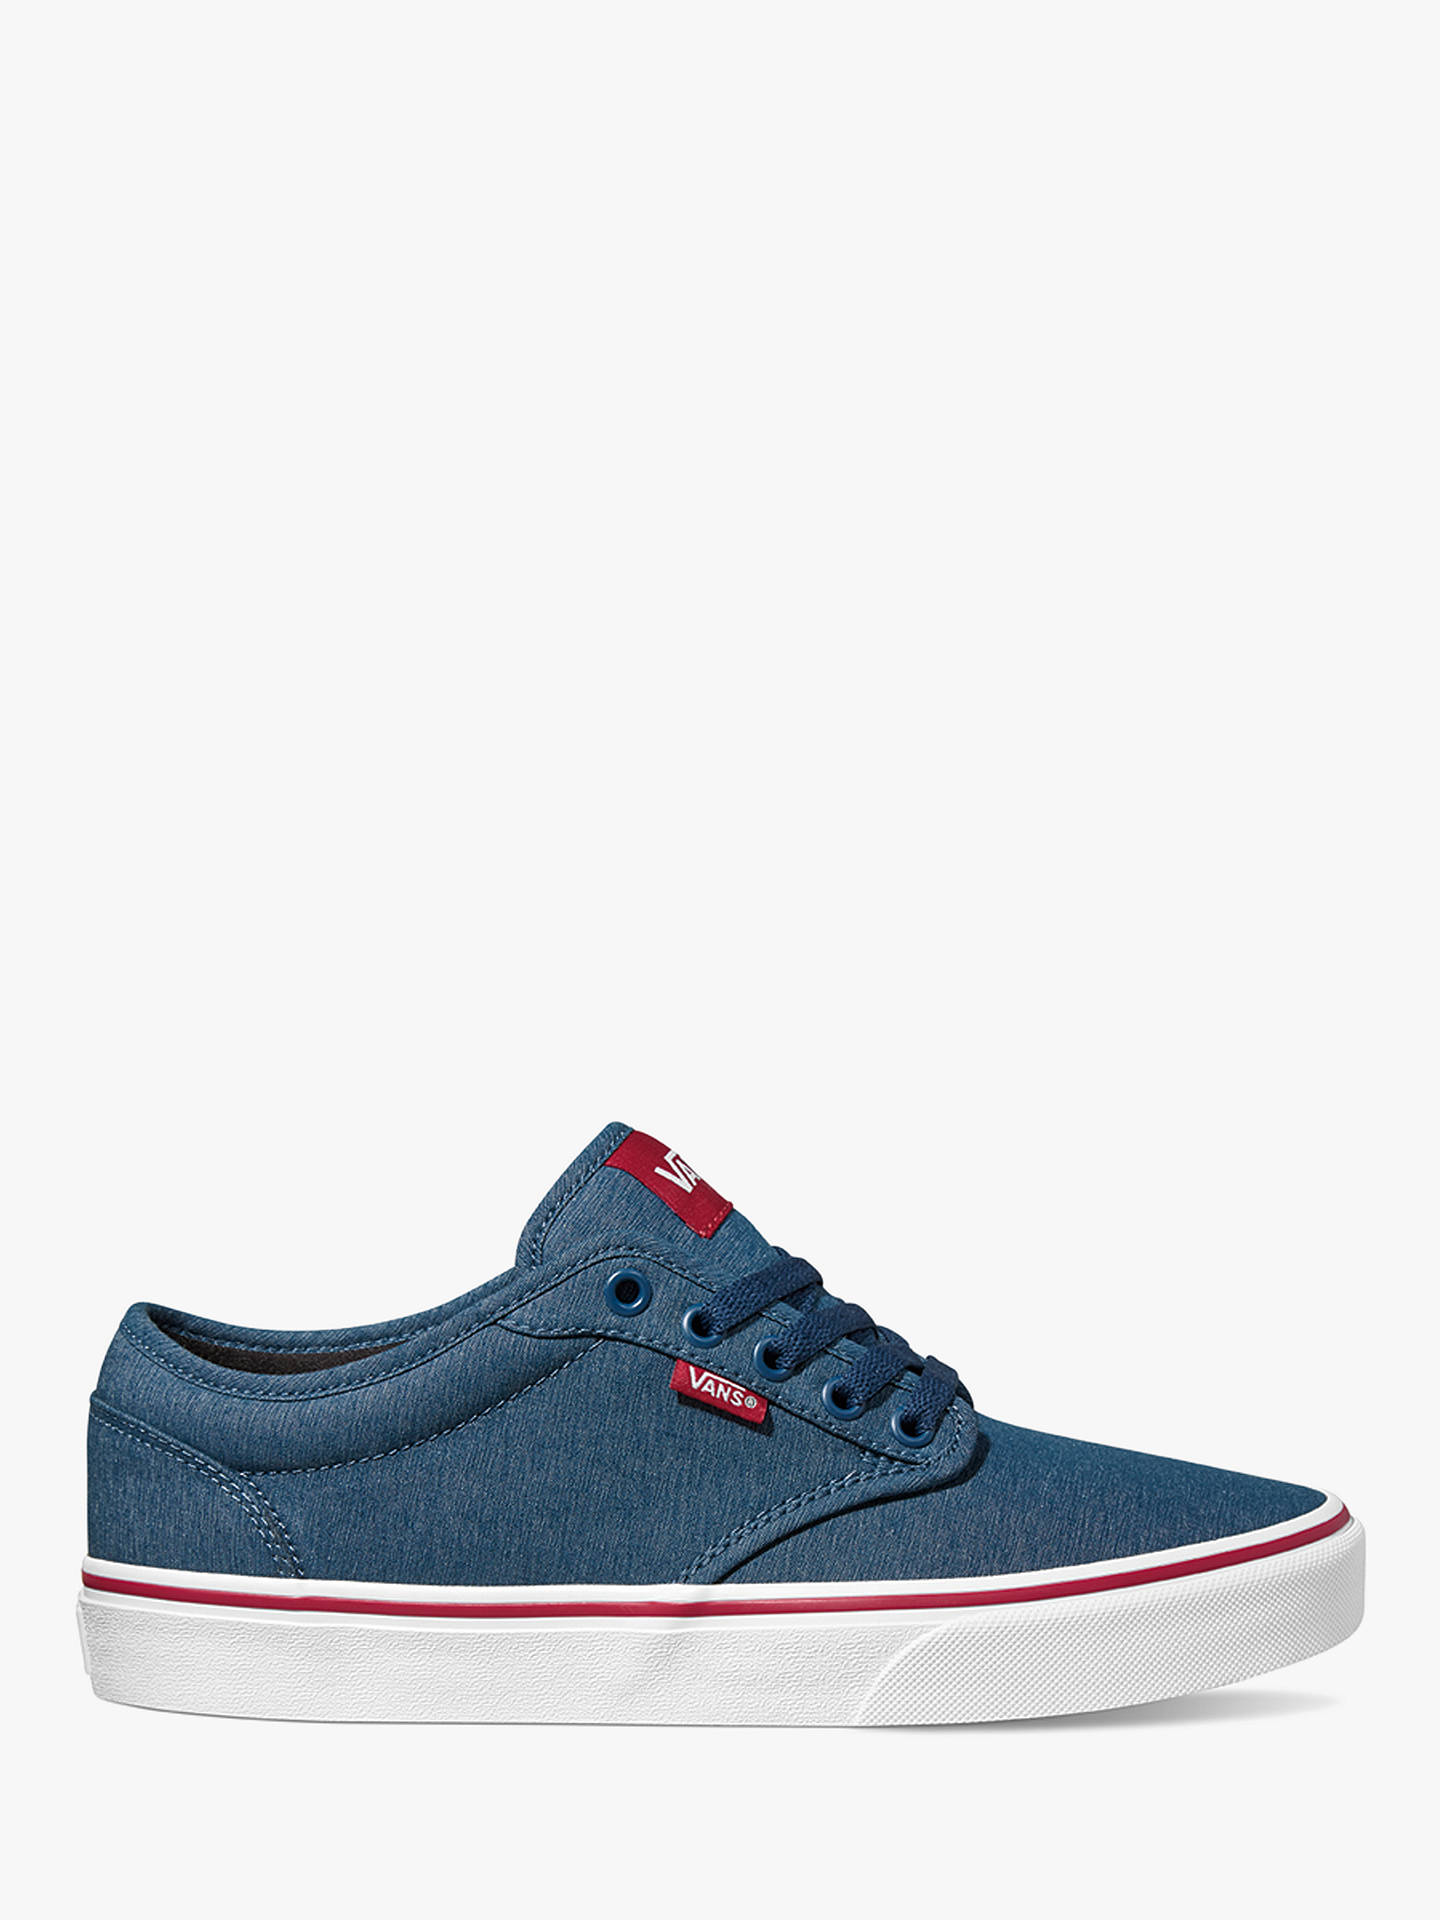 81b07e81ed Vans Atwood Canvas Trainers, Sailor Blue/Tango at John Lewis & Partners